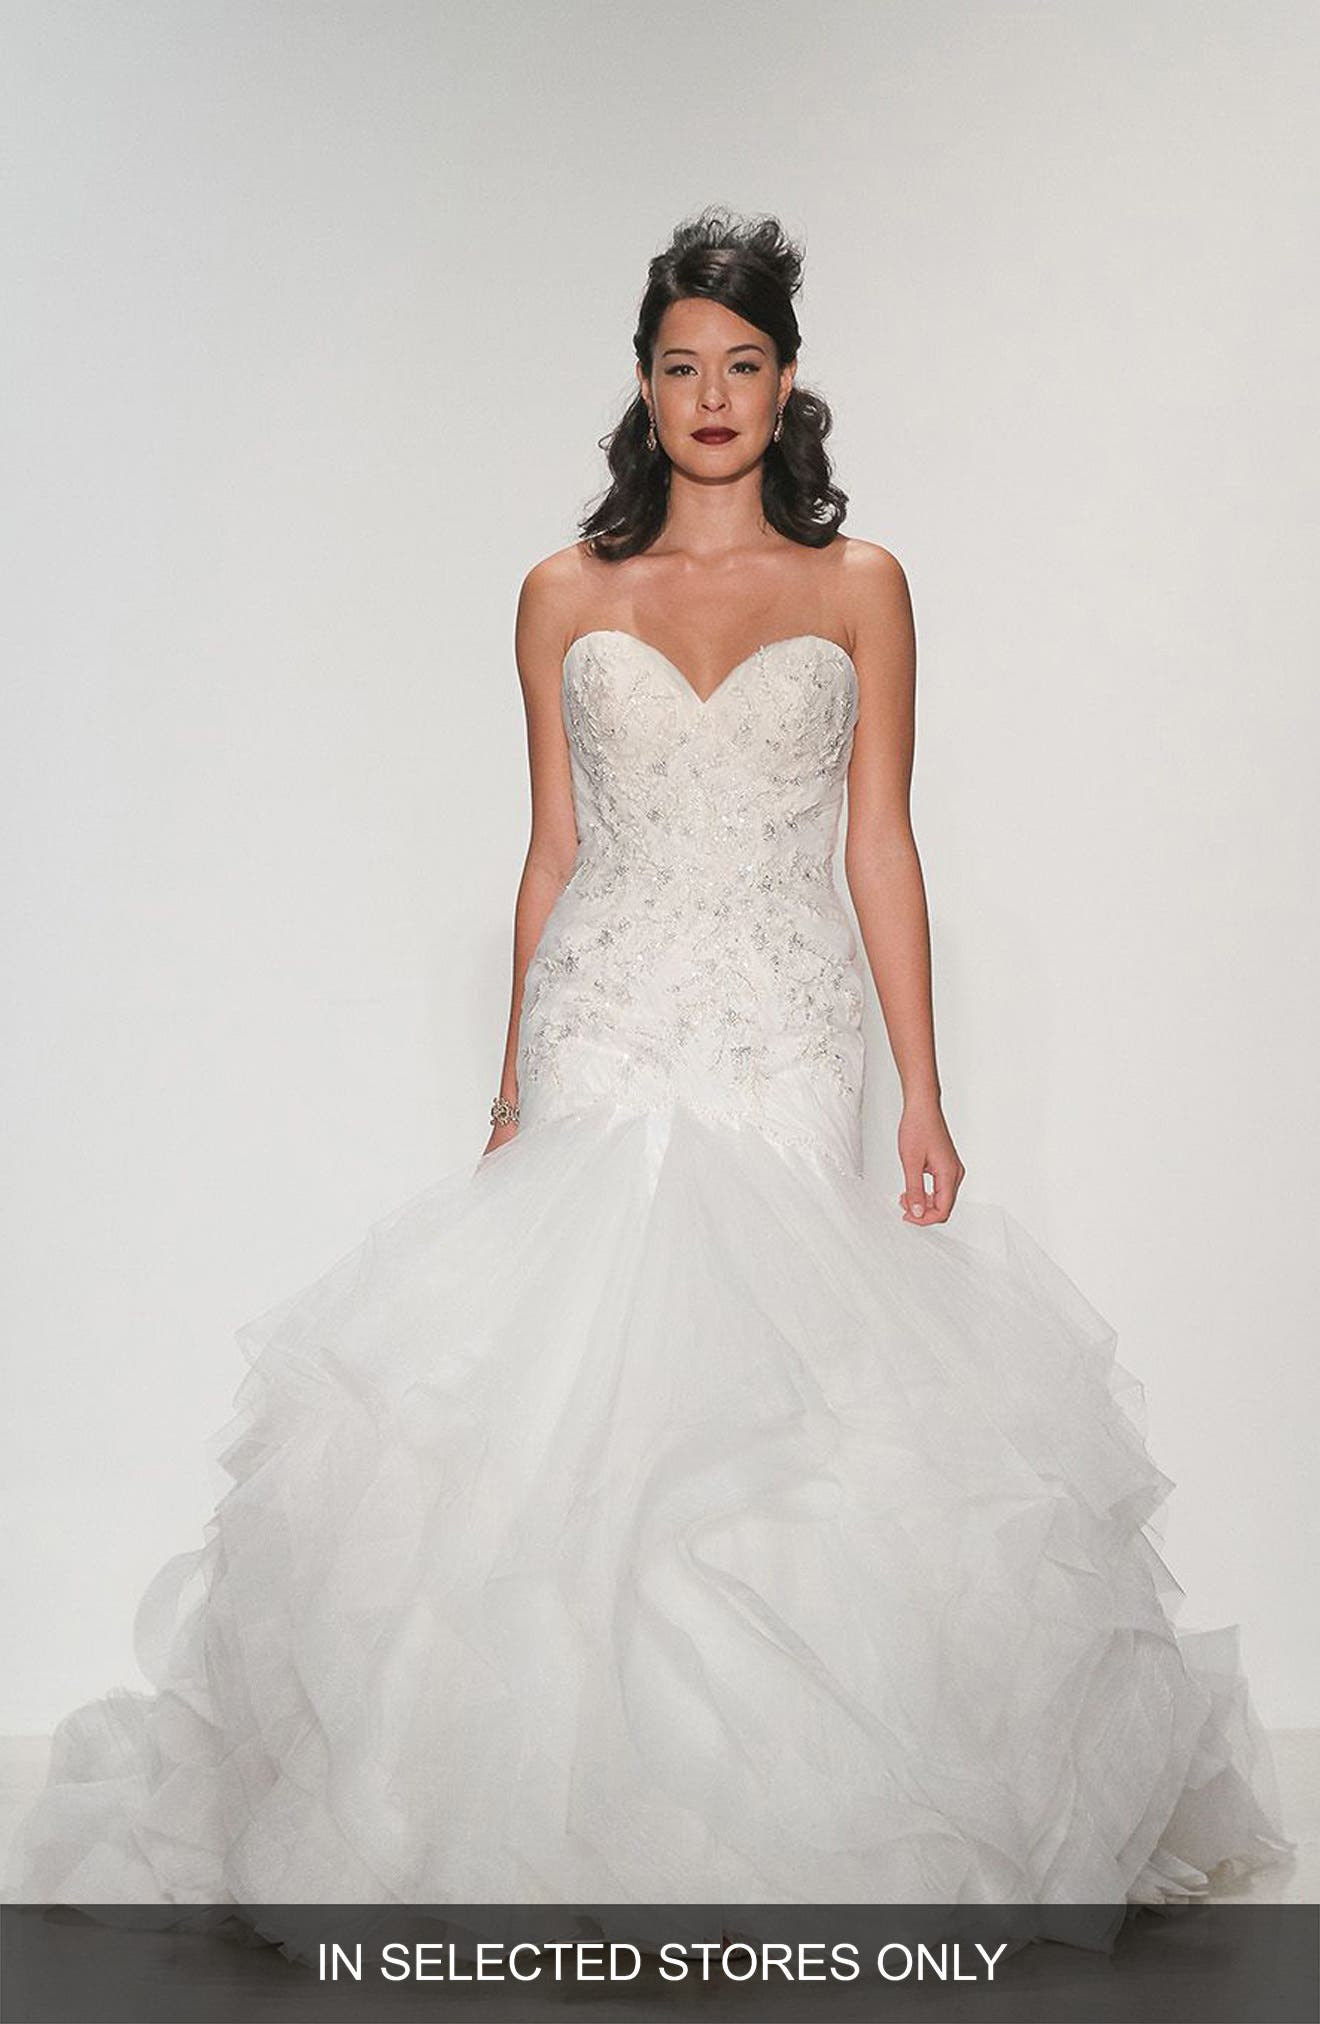 Adrianna Embellished Strapless Tulle & Organza Gown,                         Main,                         color, Baby Pink